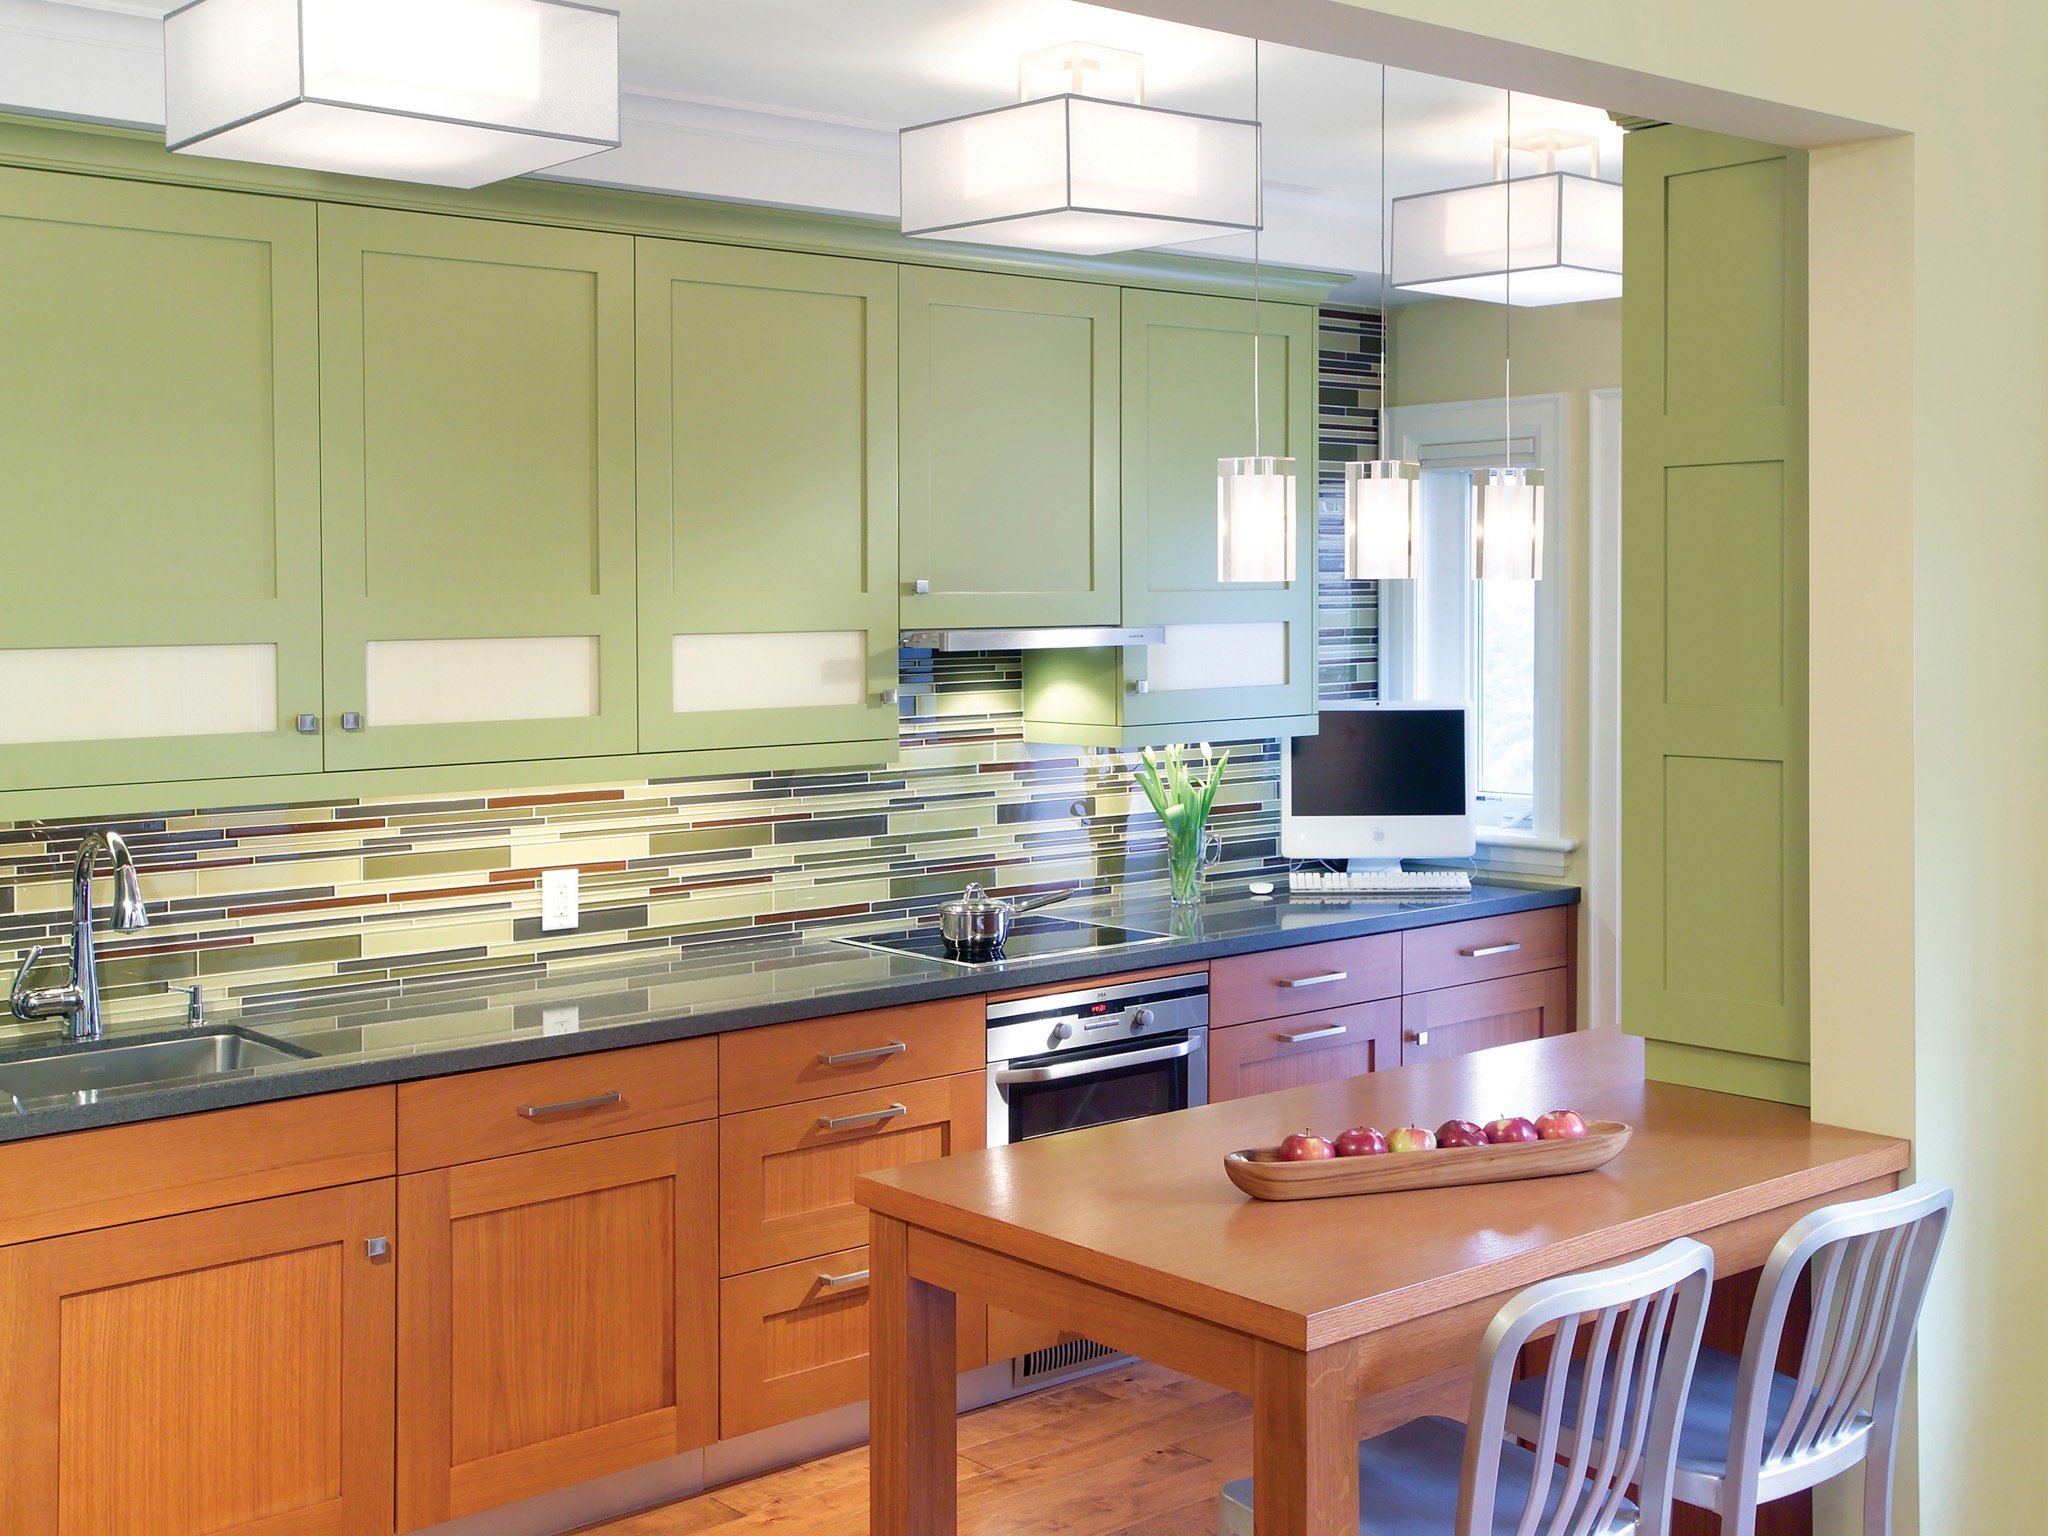 Fullsize Of Green Kitchen Cabinets